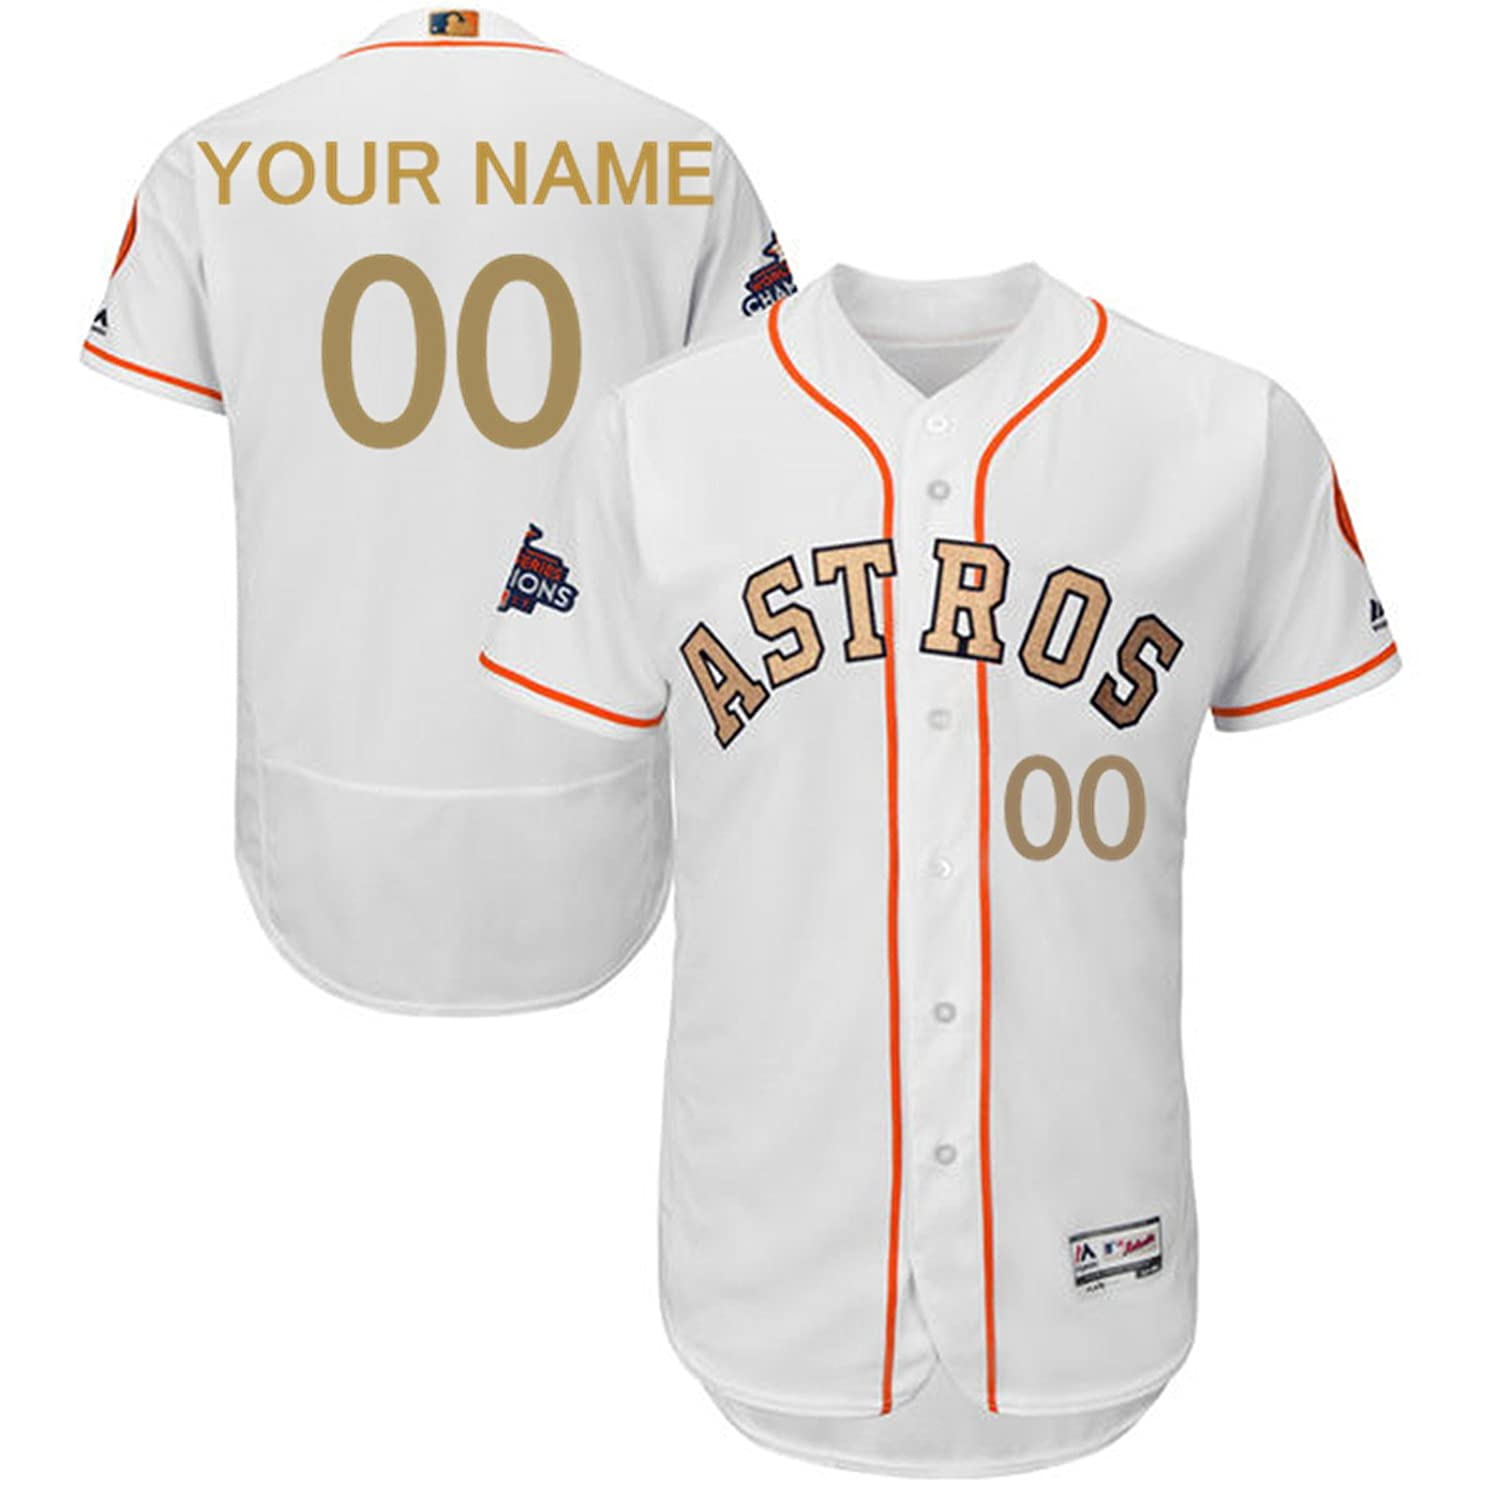 58ae2508c Majestic Athletic Men s Houston Astros Any Name Any Number Custom Home  Baseball Jersey - White